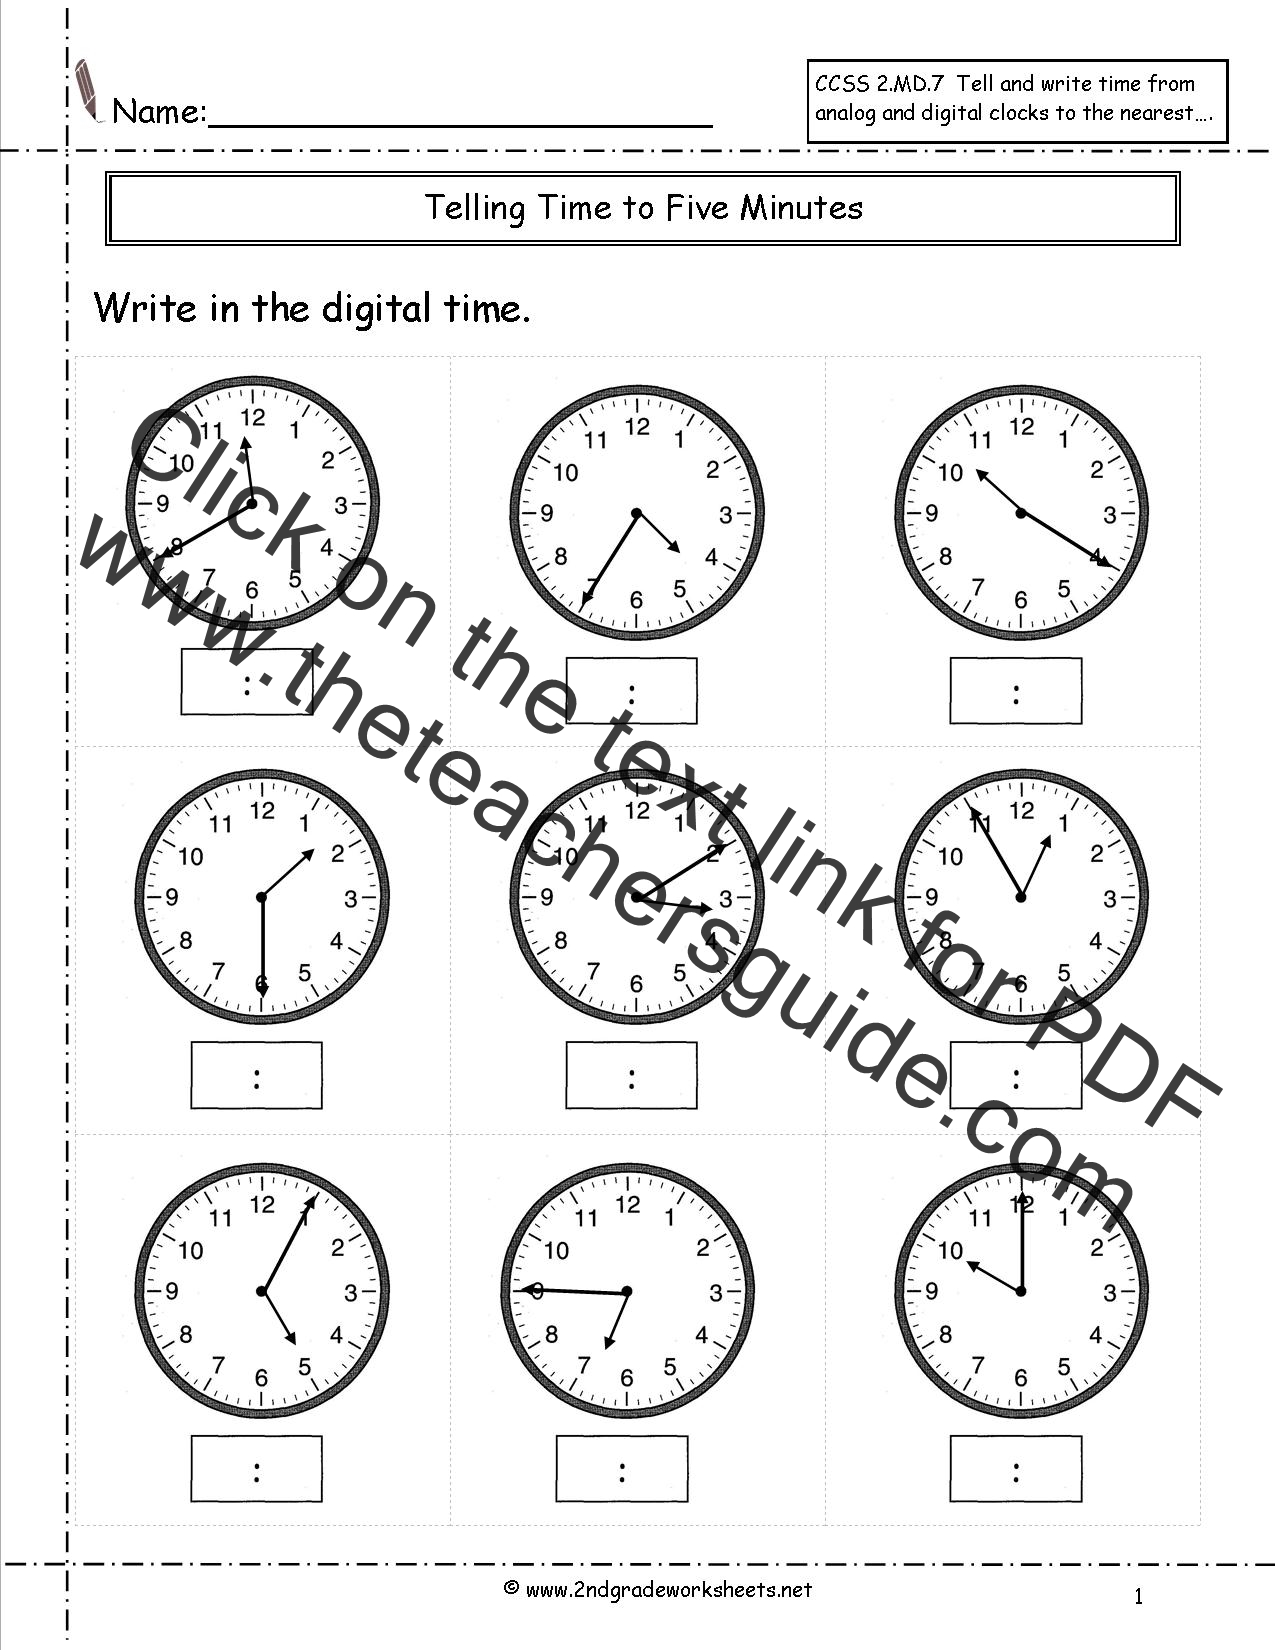 Worksheets How To Tell Time Worksheets telling and writing time worksheets to nearest five minutes worksheet